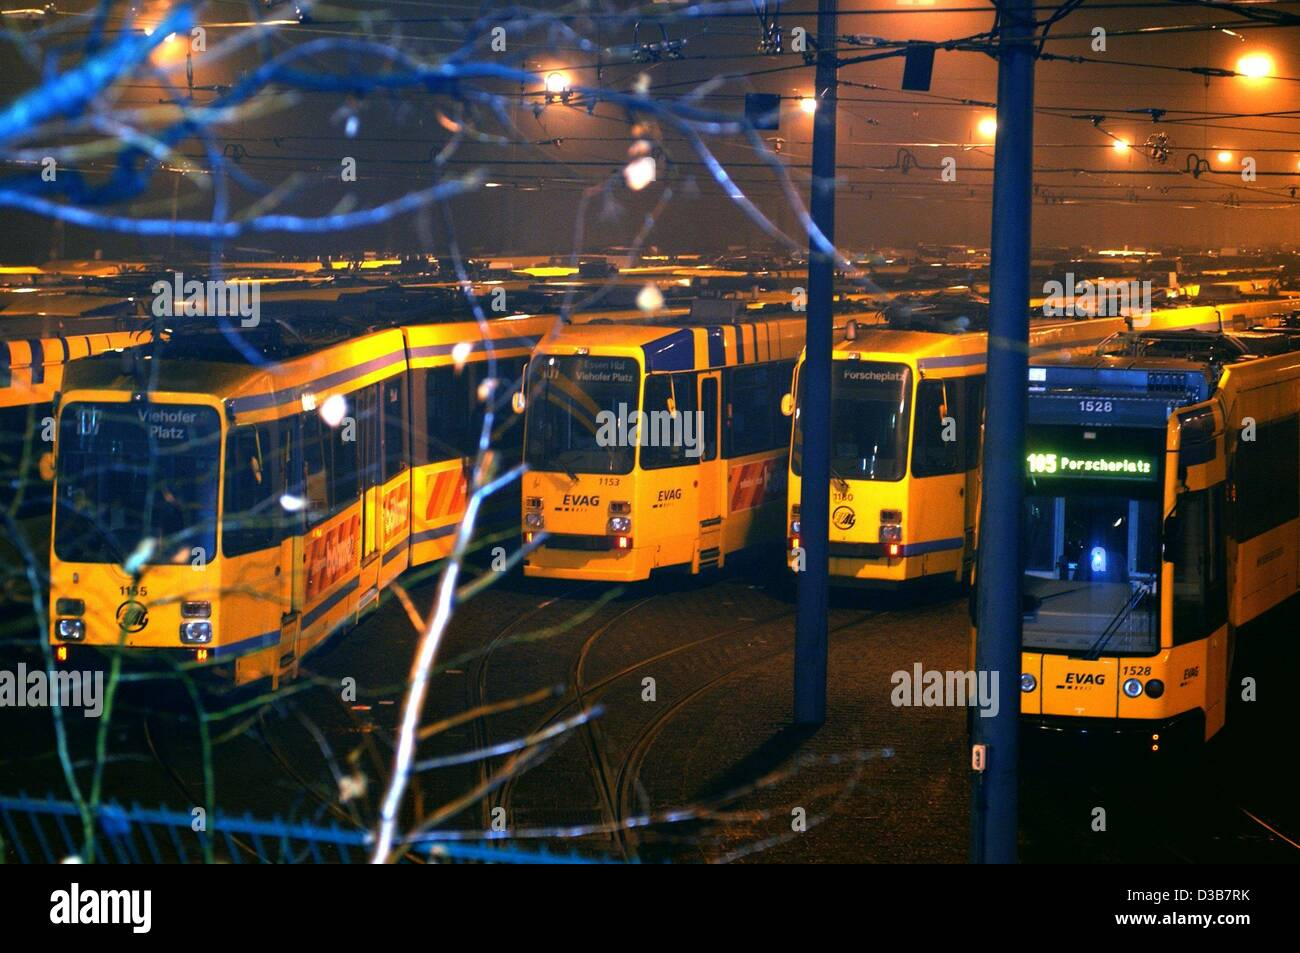 (dpa) - In the light of street lamps and spotlights streetcars stand in the depot in Essen, Germany, 17 December - Stock Image